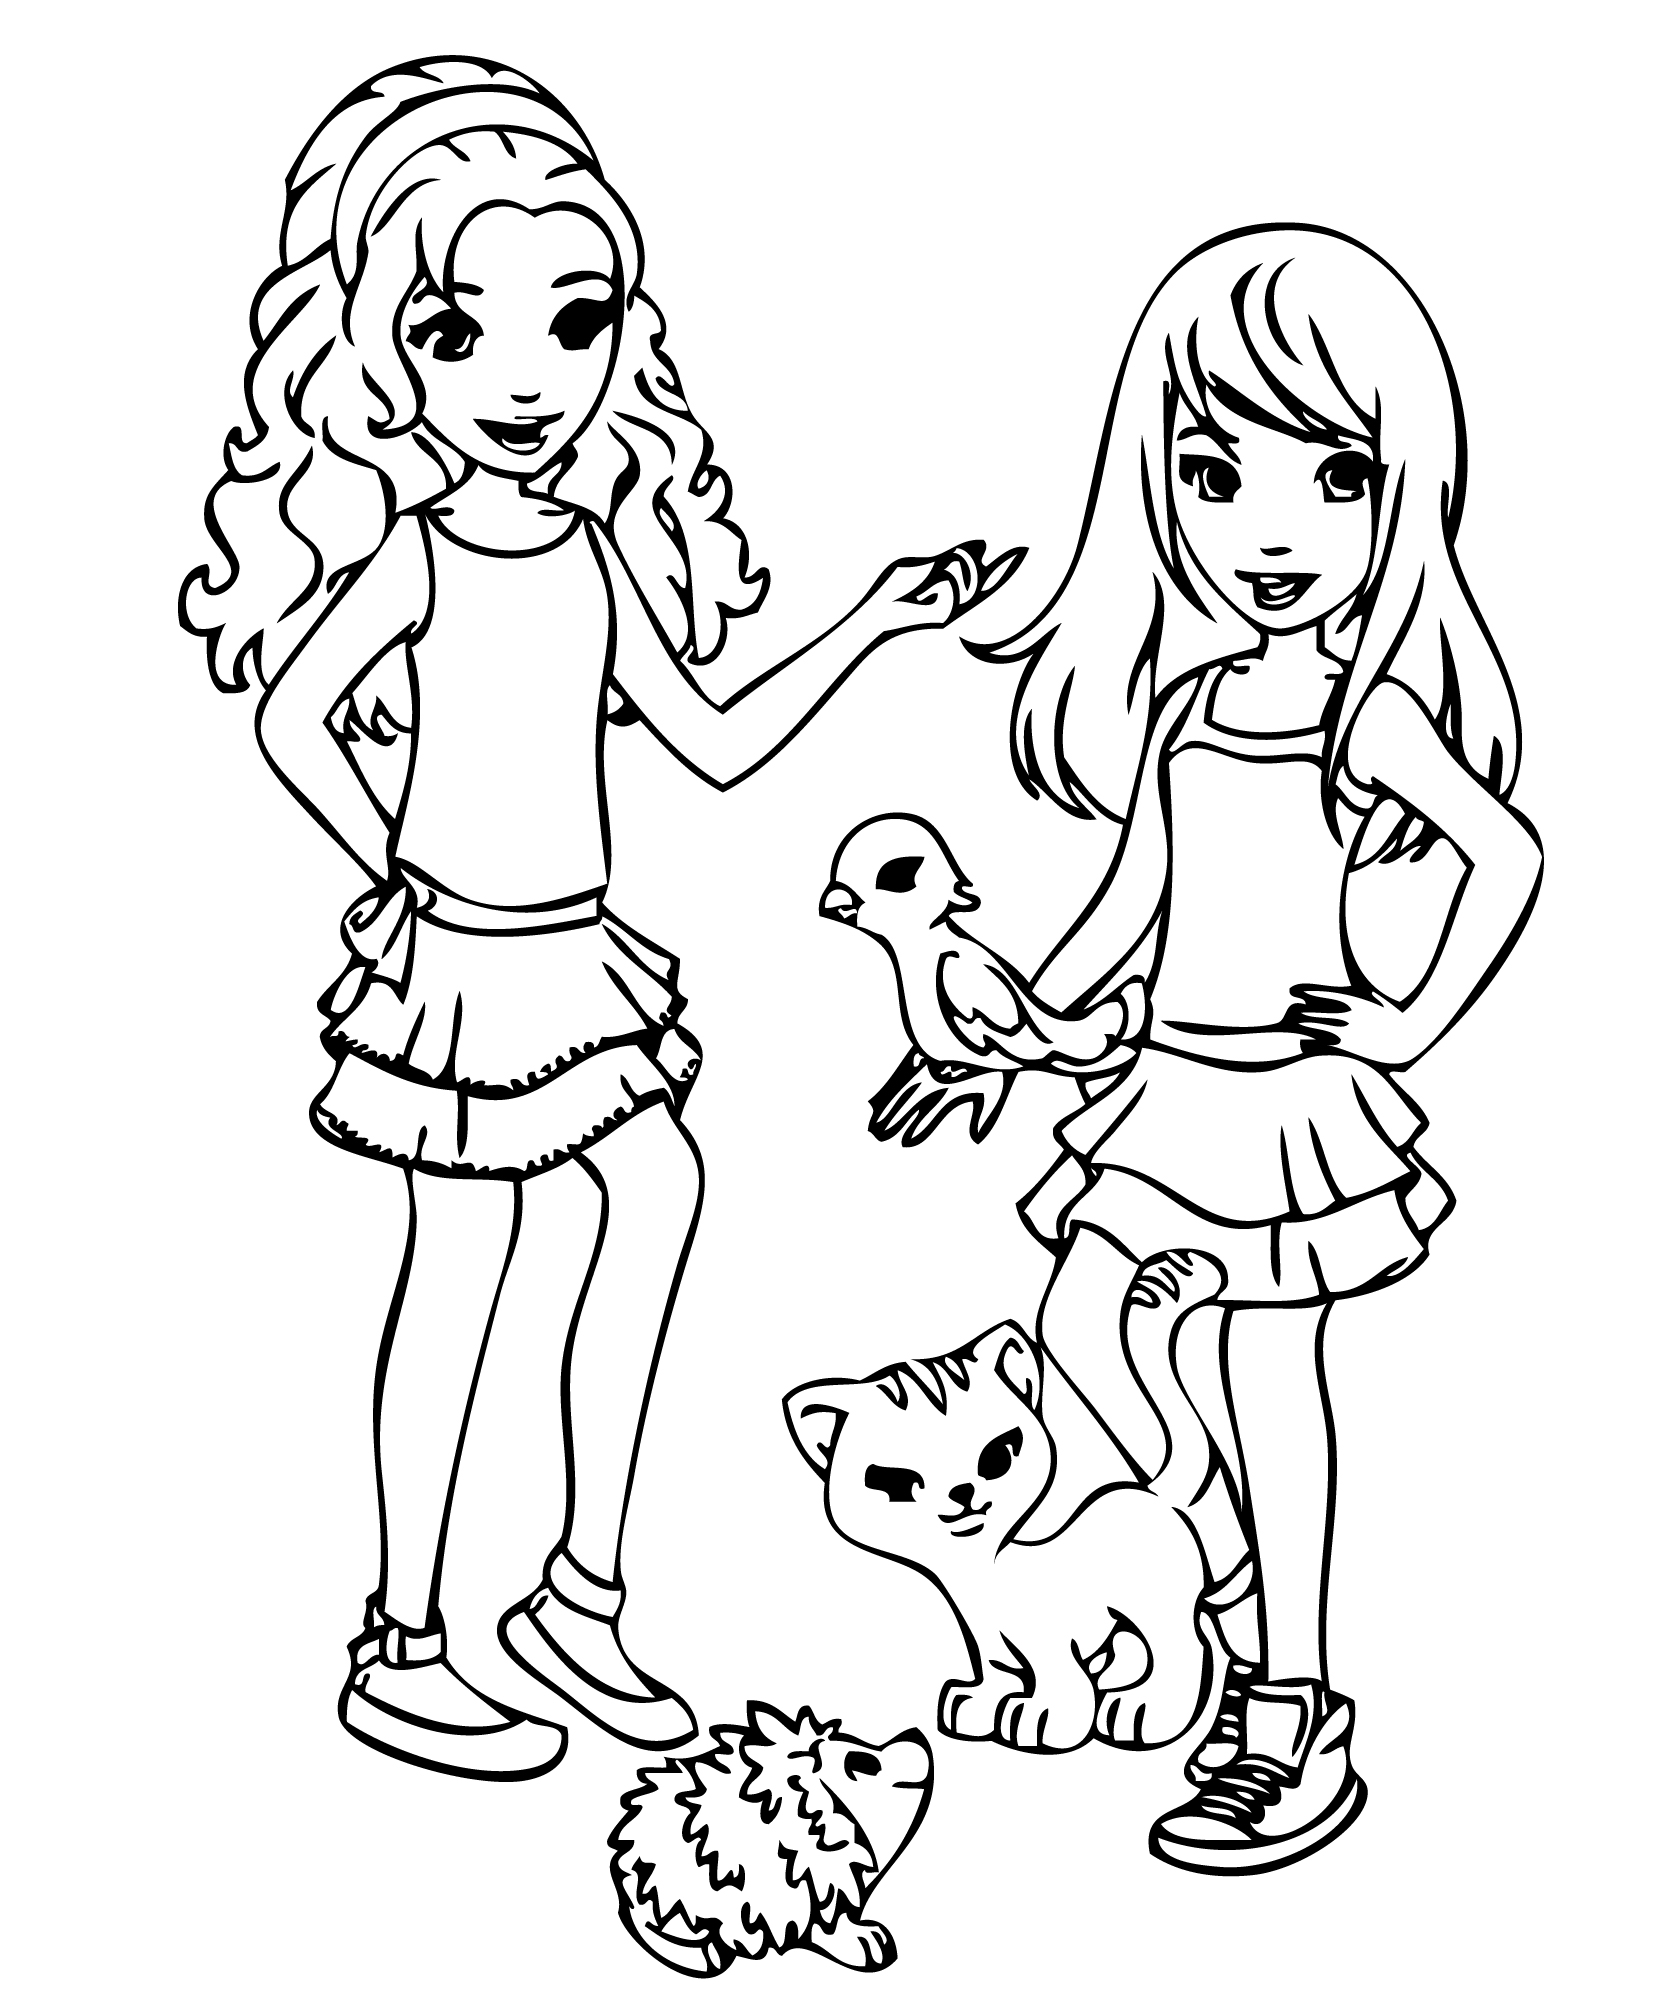 Free Friendship Coloring Pages at GetDrawings.com | Free for ...